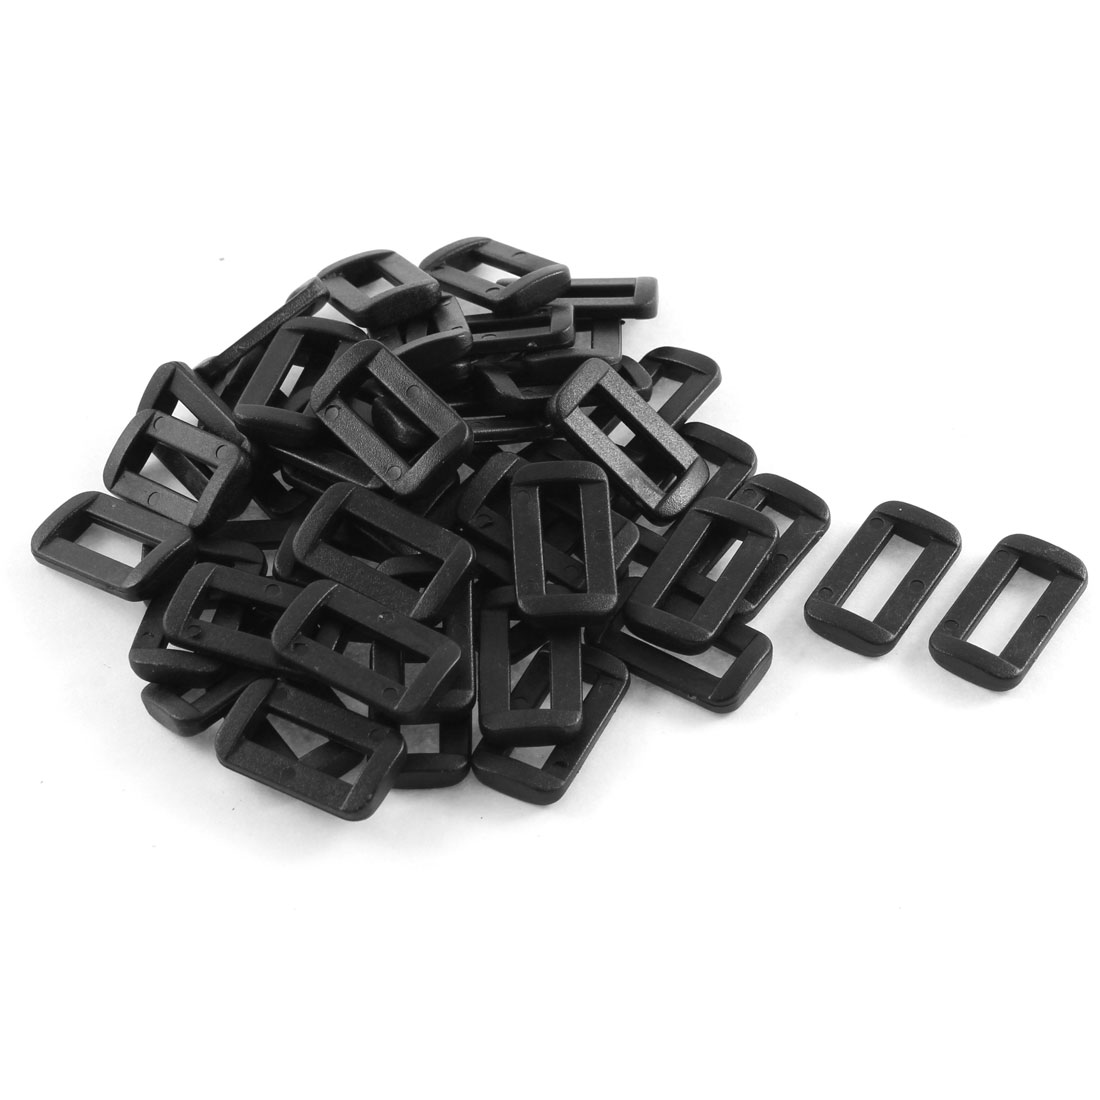 50pcs Black Plastic Bar Slides Buckles for 15mm Webbing Strap